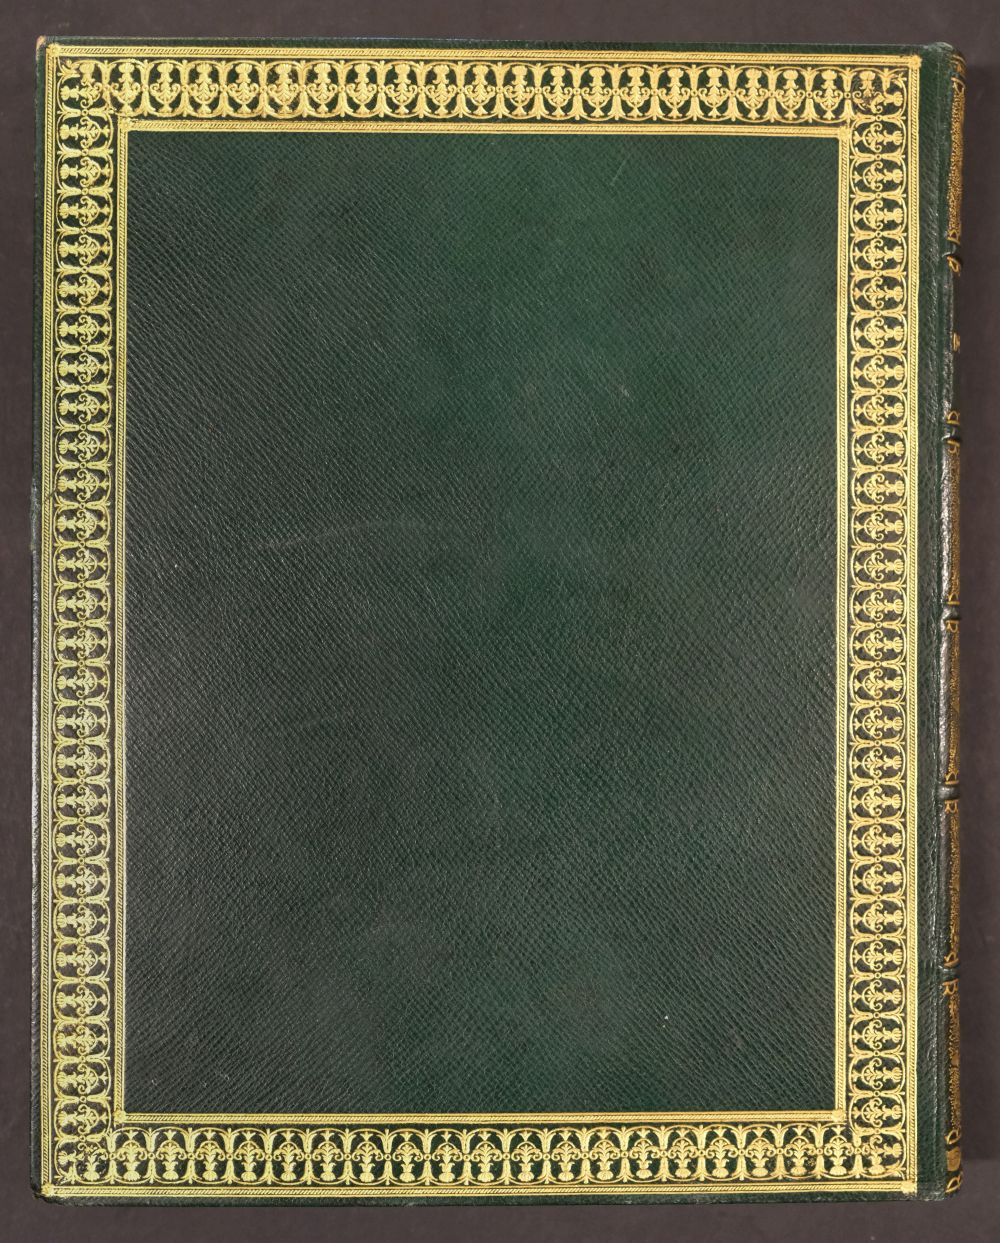 Devonshire Gems. Duke of Devonshire's Collection of Gems, privately printed, circa 1790 - Image 7 of 16